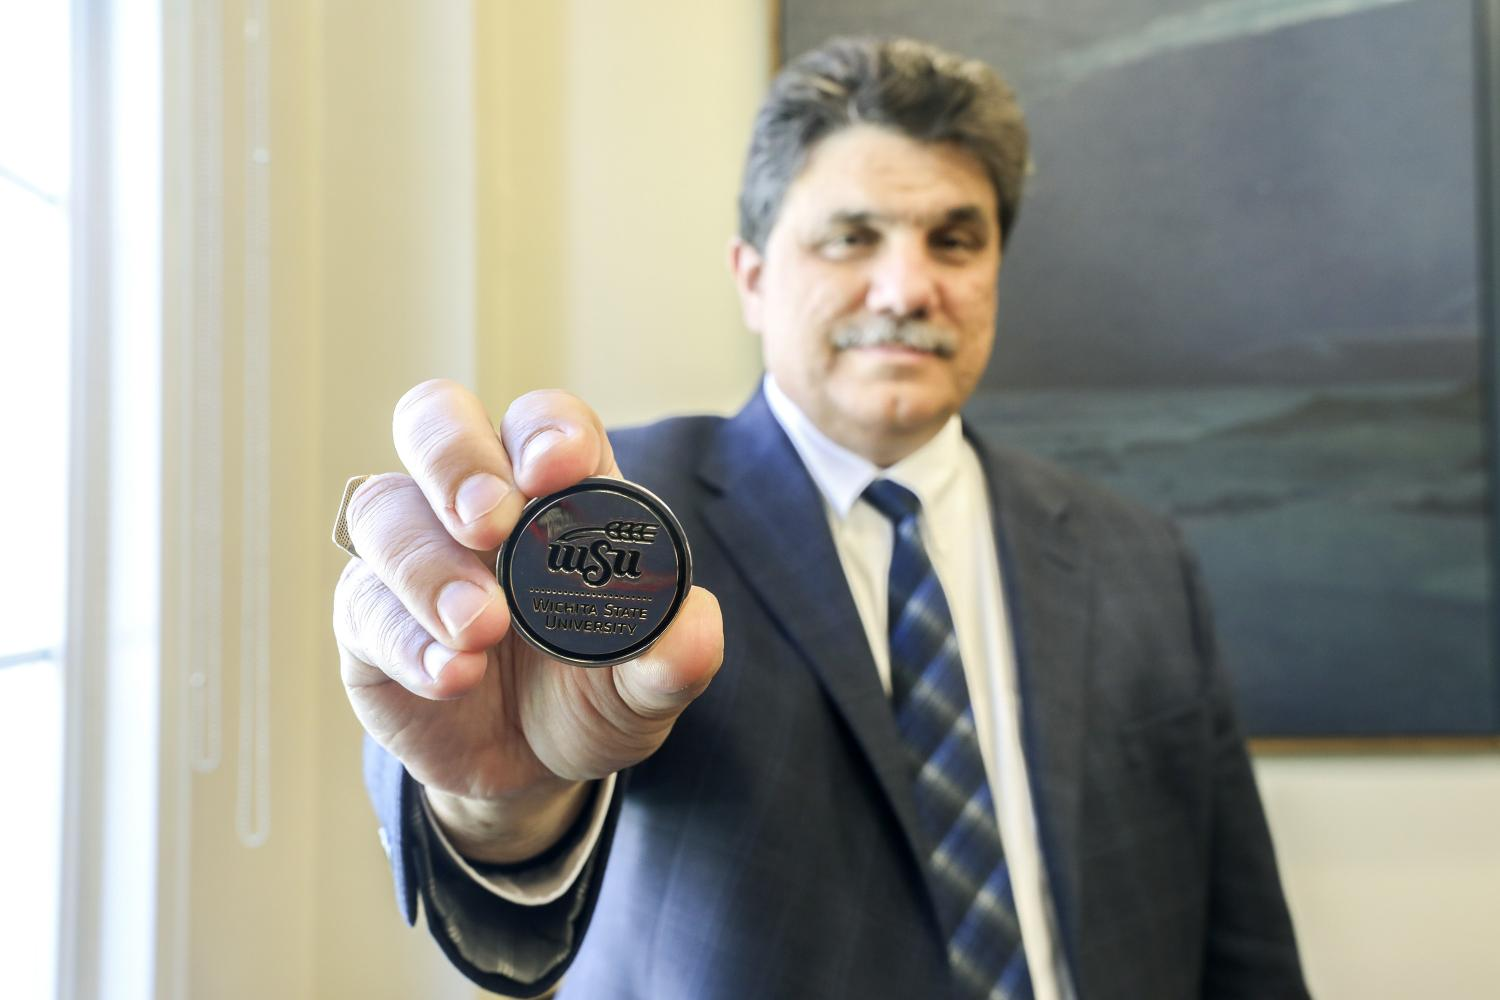 WSU+Provost+and+Senior+Vice+President+Anthony+Vizzini+holds+one+of+the+challenge+coins+given+to+graduates+during+the%0Aceremony.+Dr.+Vizzini+said+he+always+carries+one+in+his+pocket.